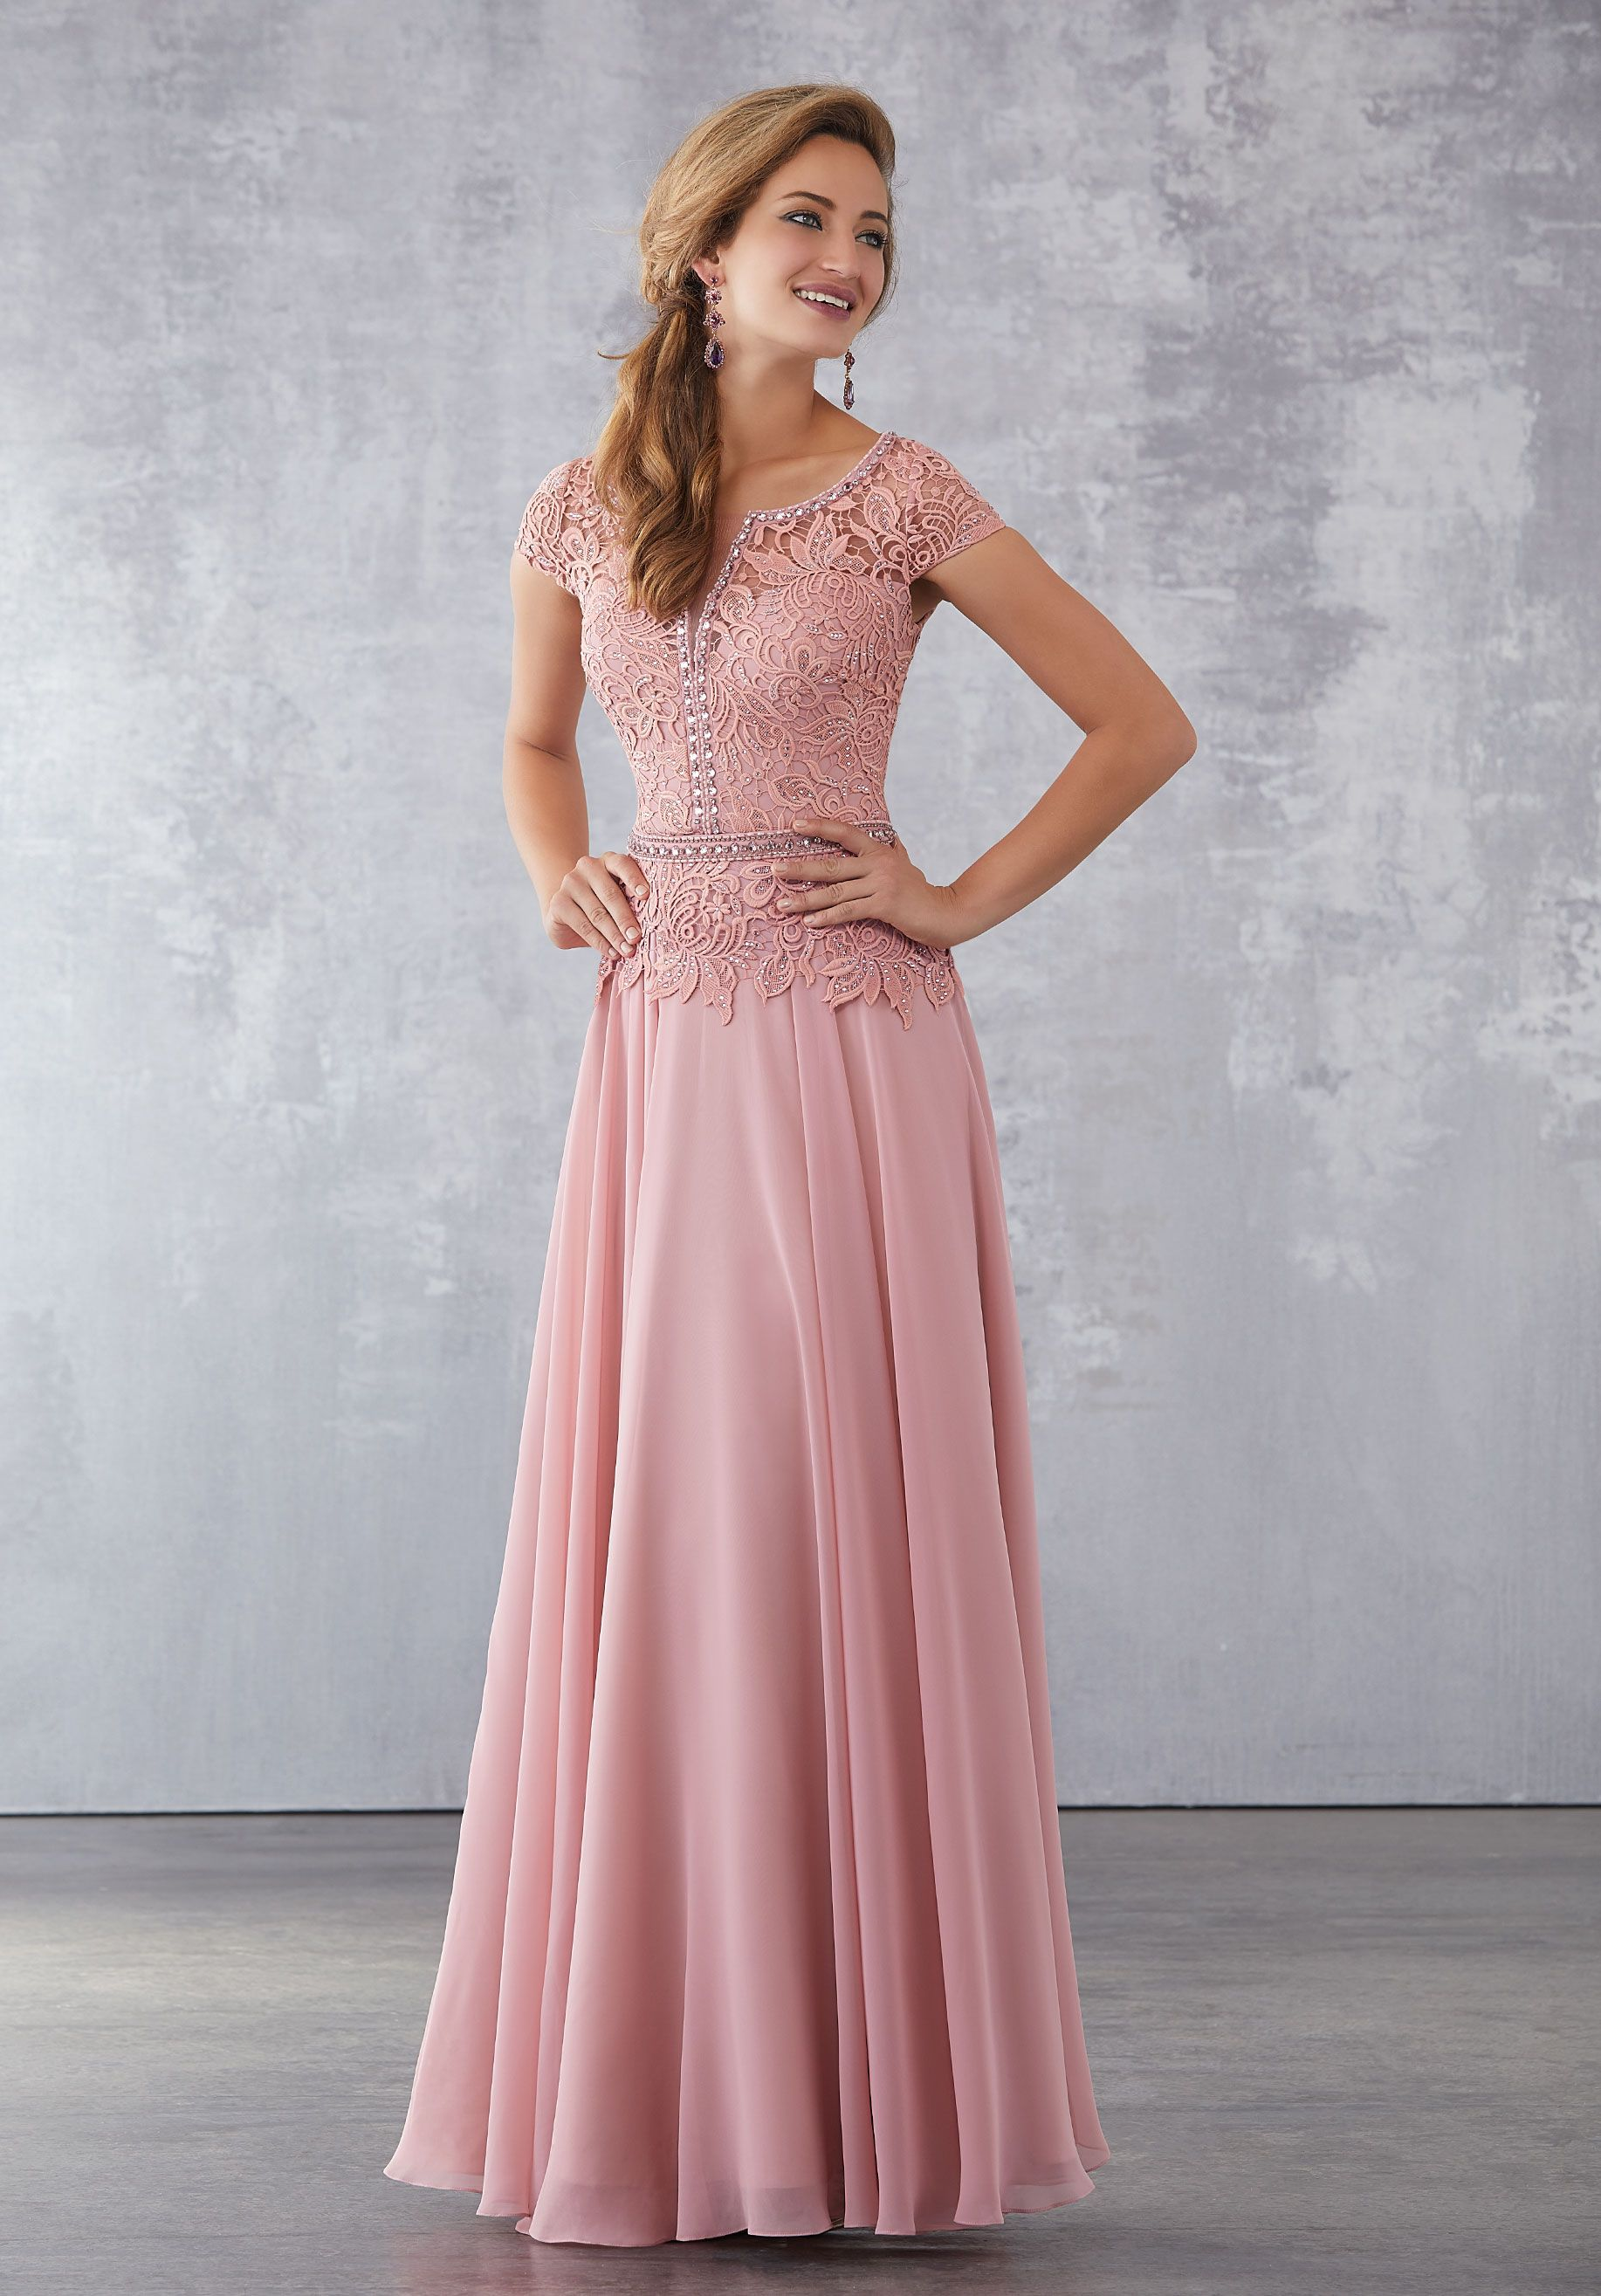 Beaded Venice Lace on Chiffon. Removable Beaded Belt. Matching Stole ...